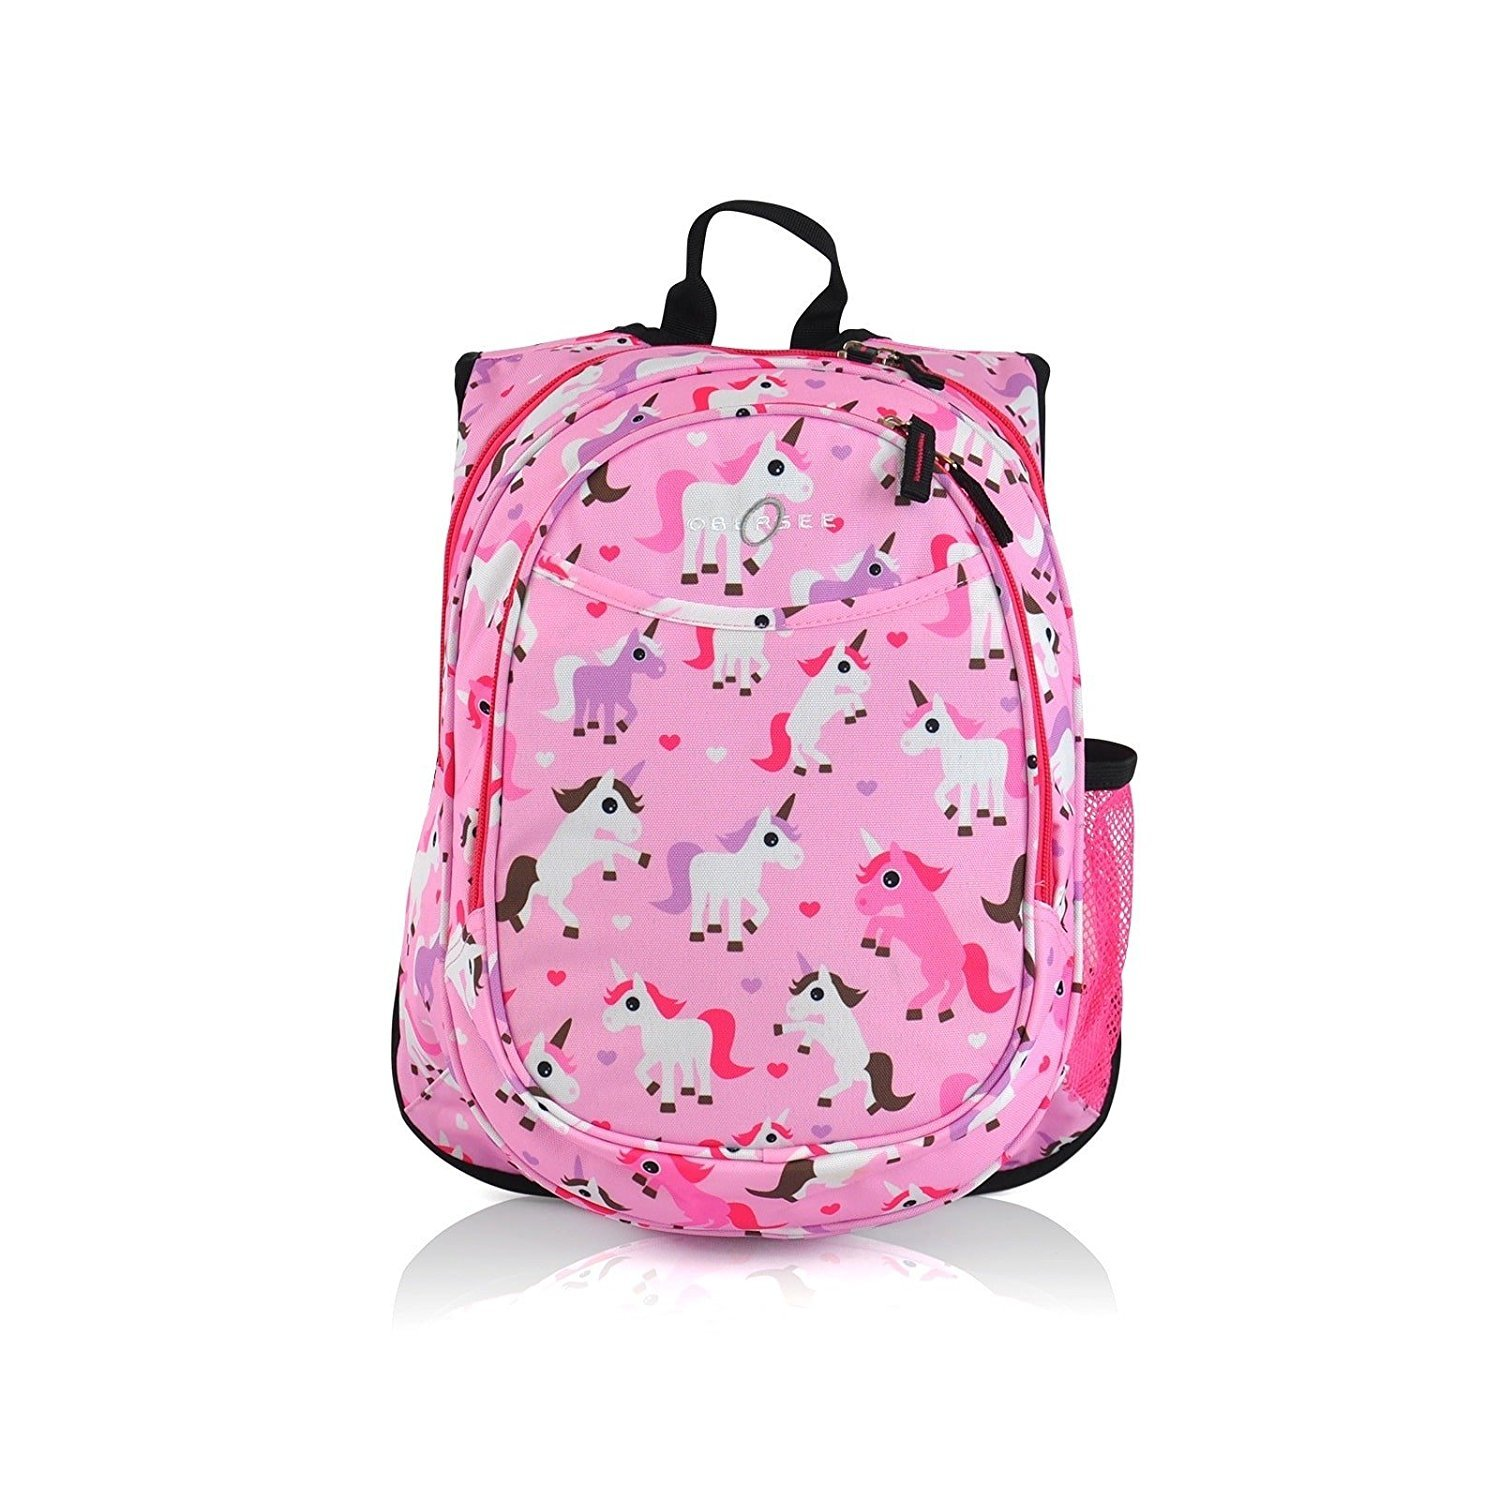 1pc Kids Unicorn Pink Purple Backpack, Fantasy Fun, Polyester, Spacious Mesh Cooler School Bag, Red Hearts Strap Back Harts